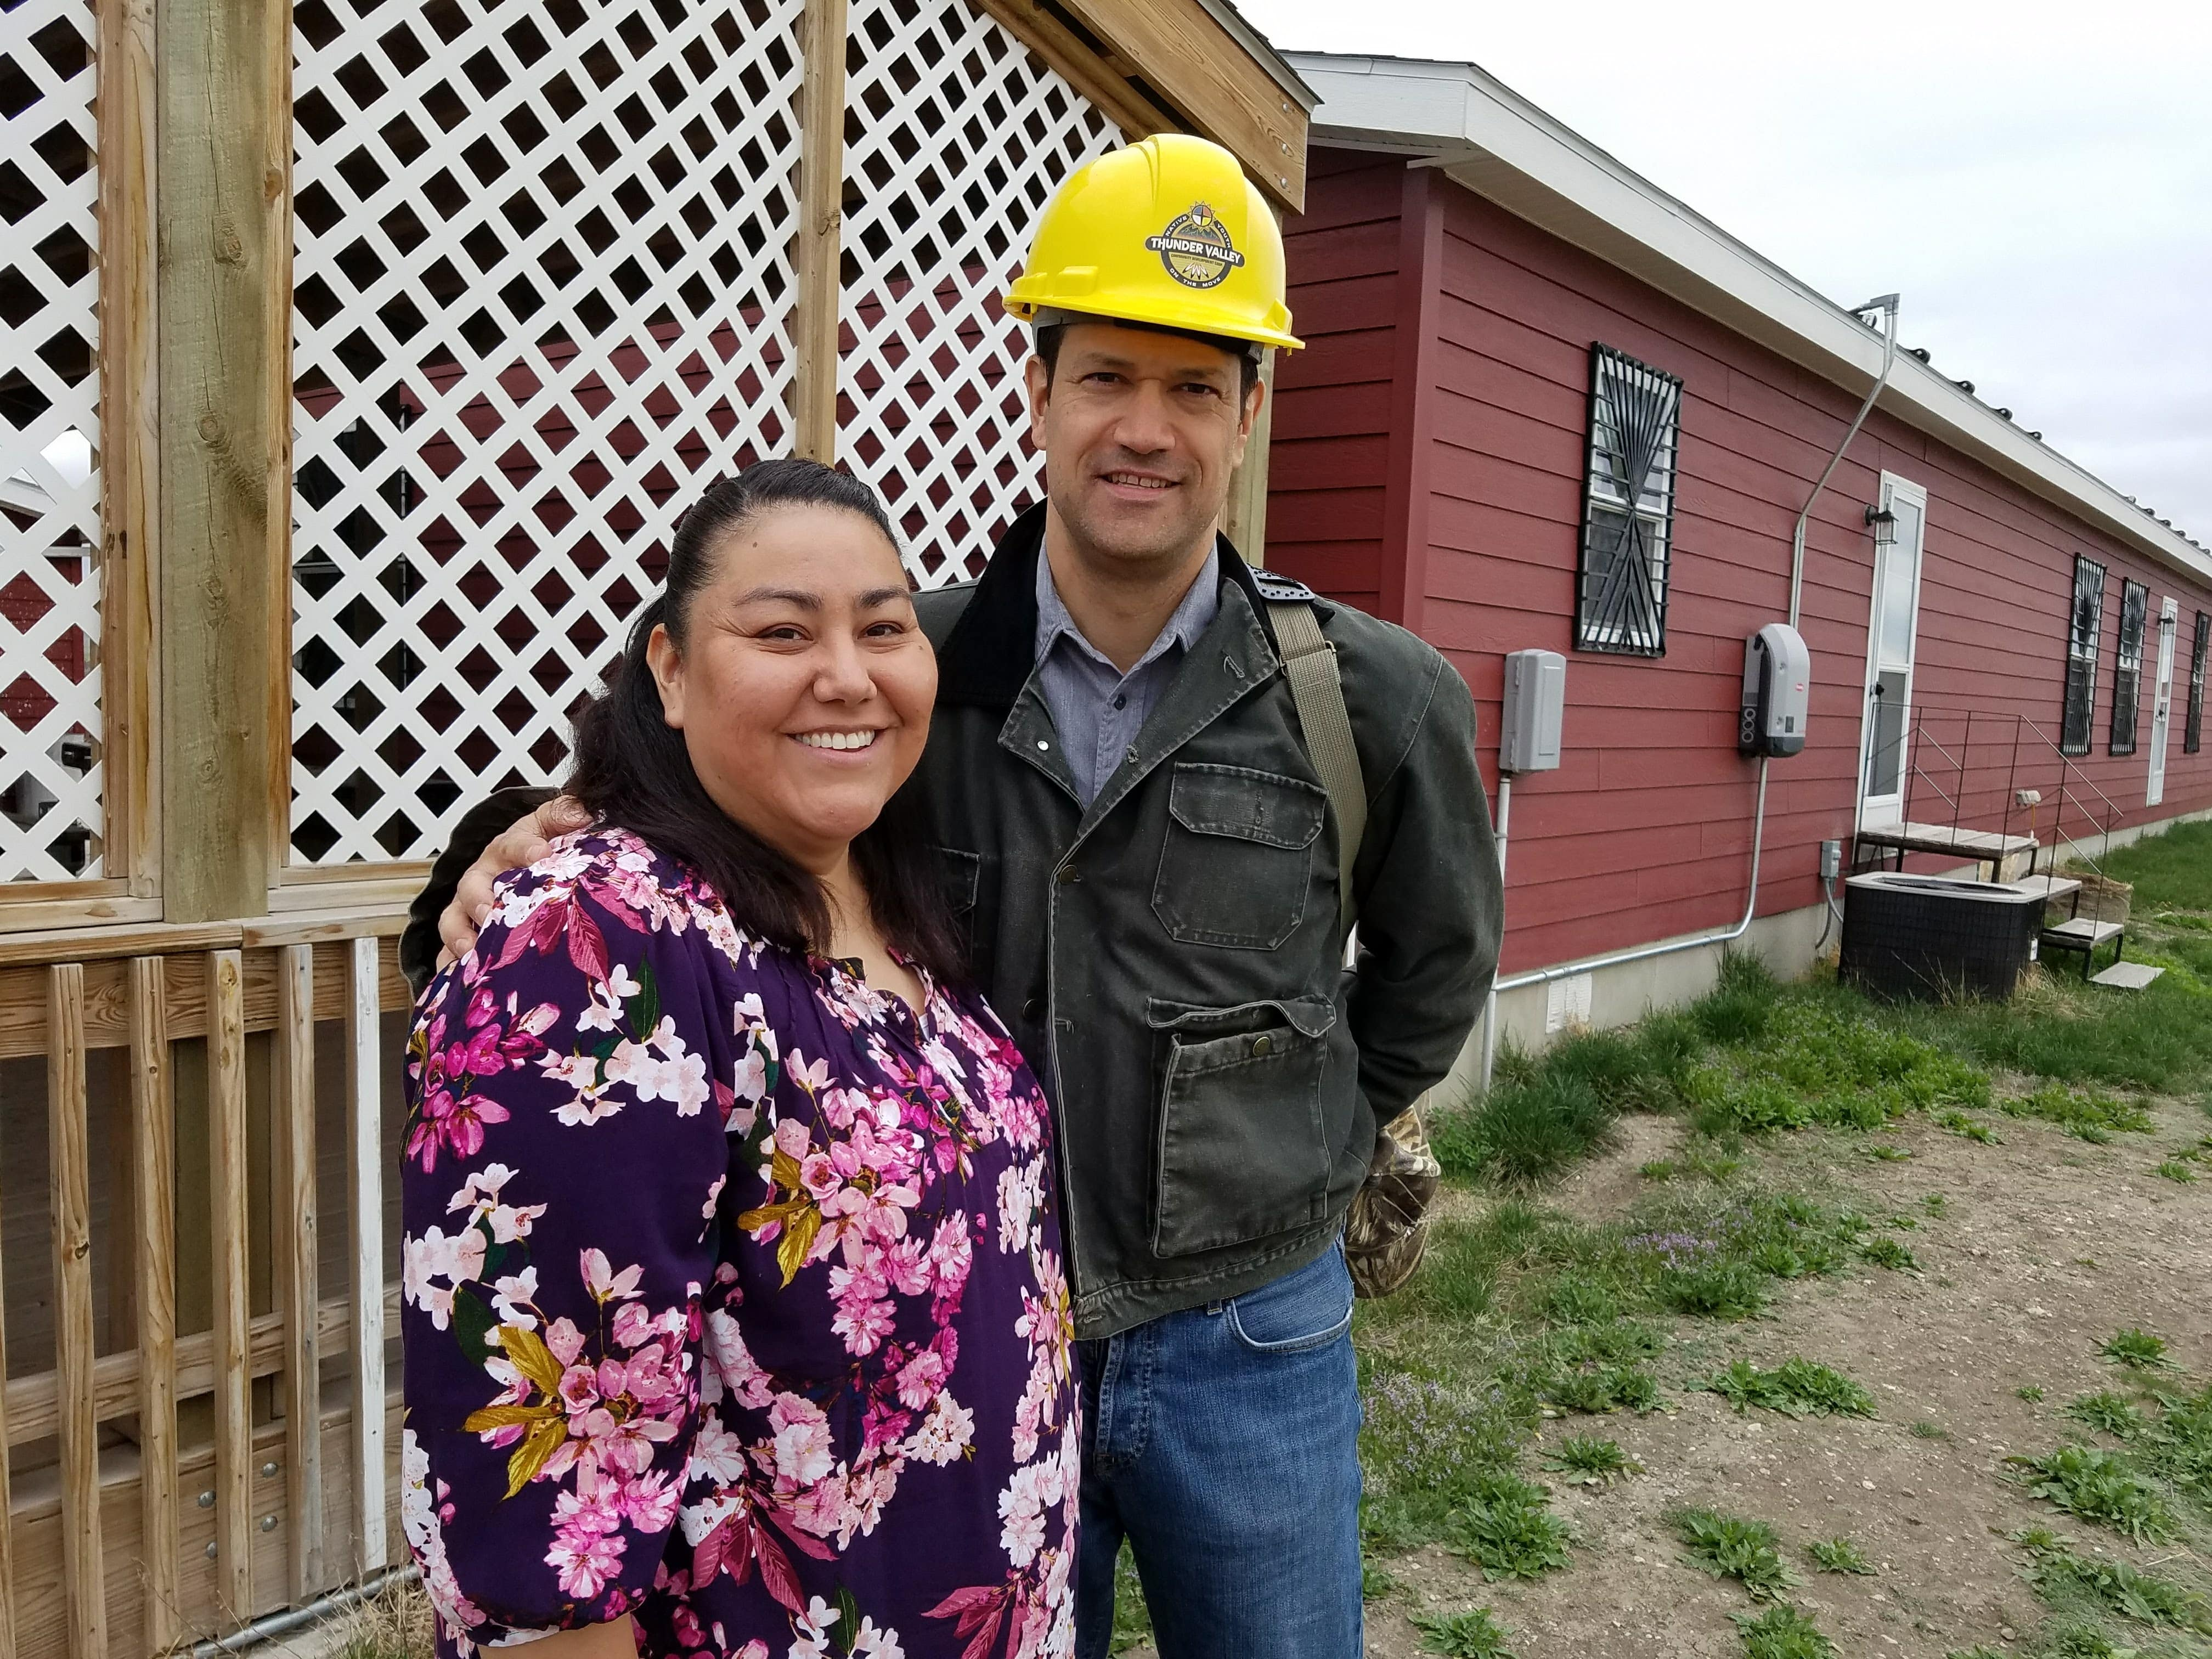 HAC CEO David Lipsetz tours housing projects on the Pine Ridge reservation